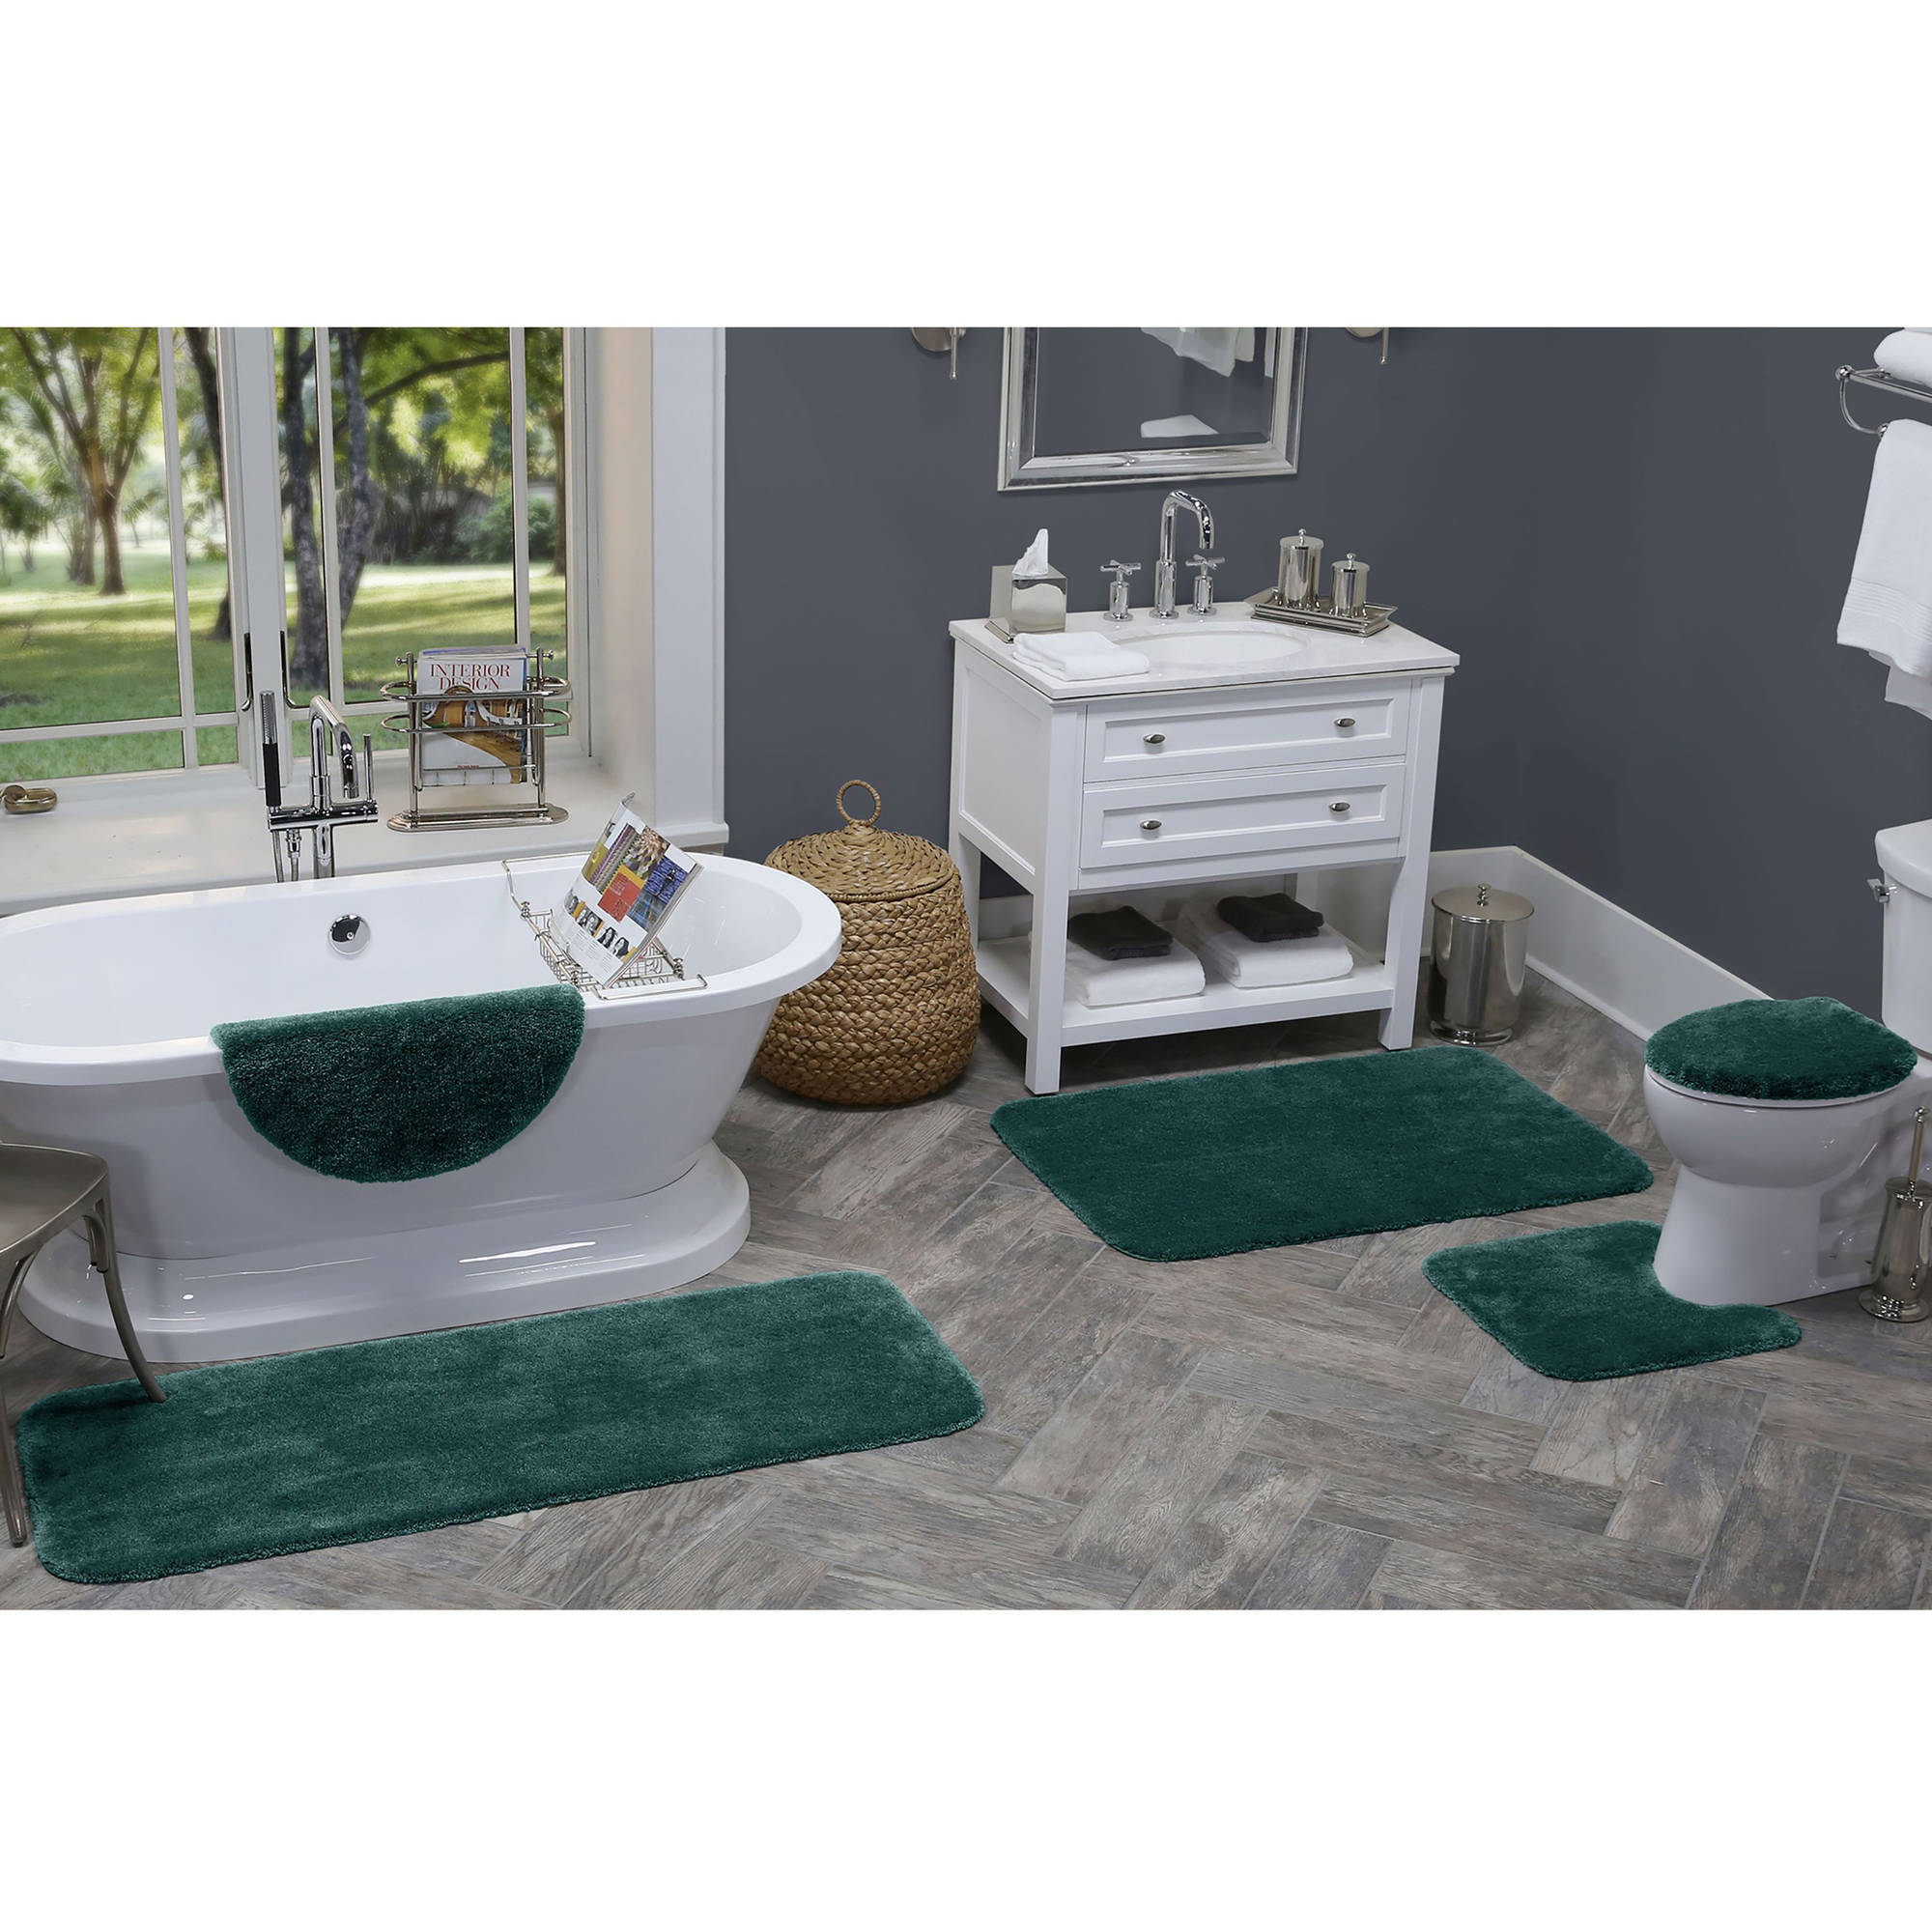 REFLECTIONS PIECE BATH RUG CONTOUR LID TANK LID TANK COVER - 5 piece bathroom rug sets for bathroom decorating ideas